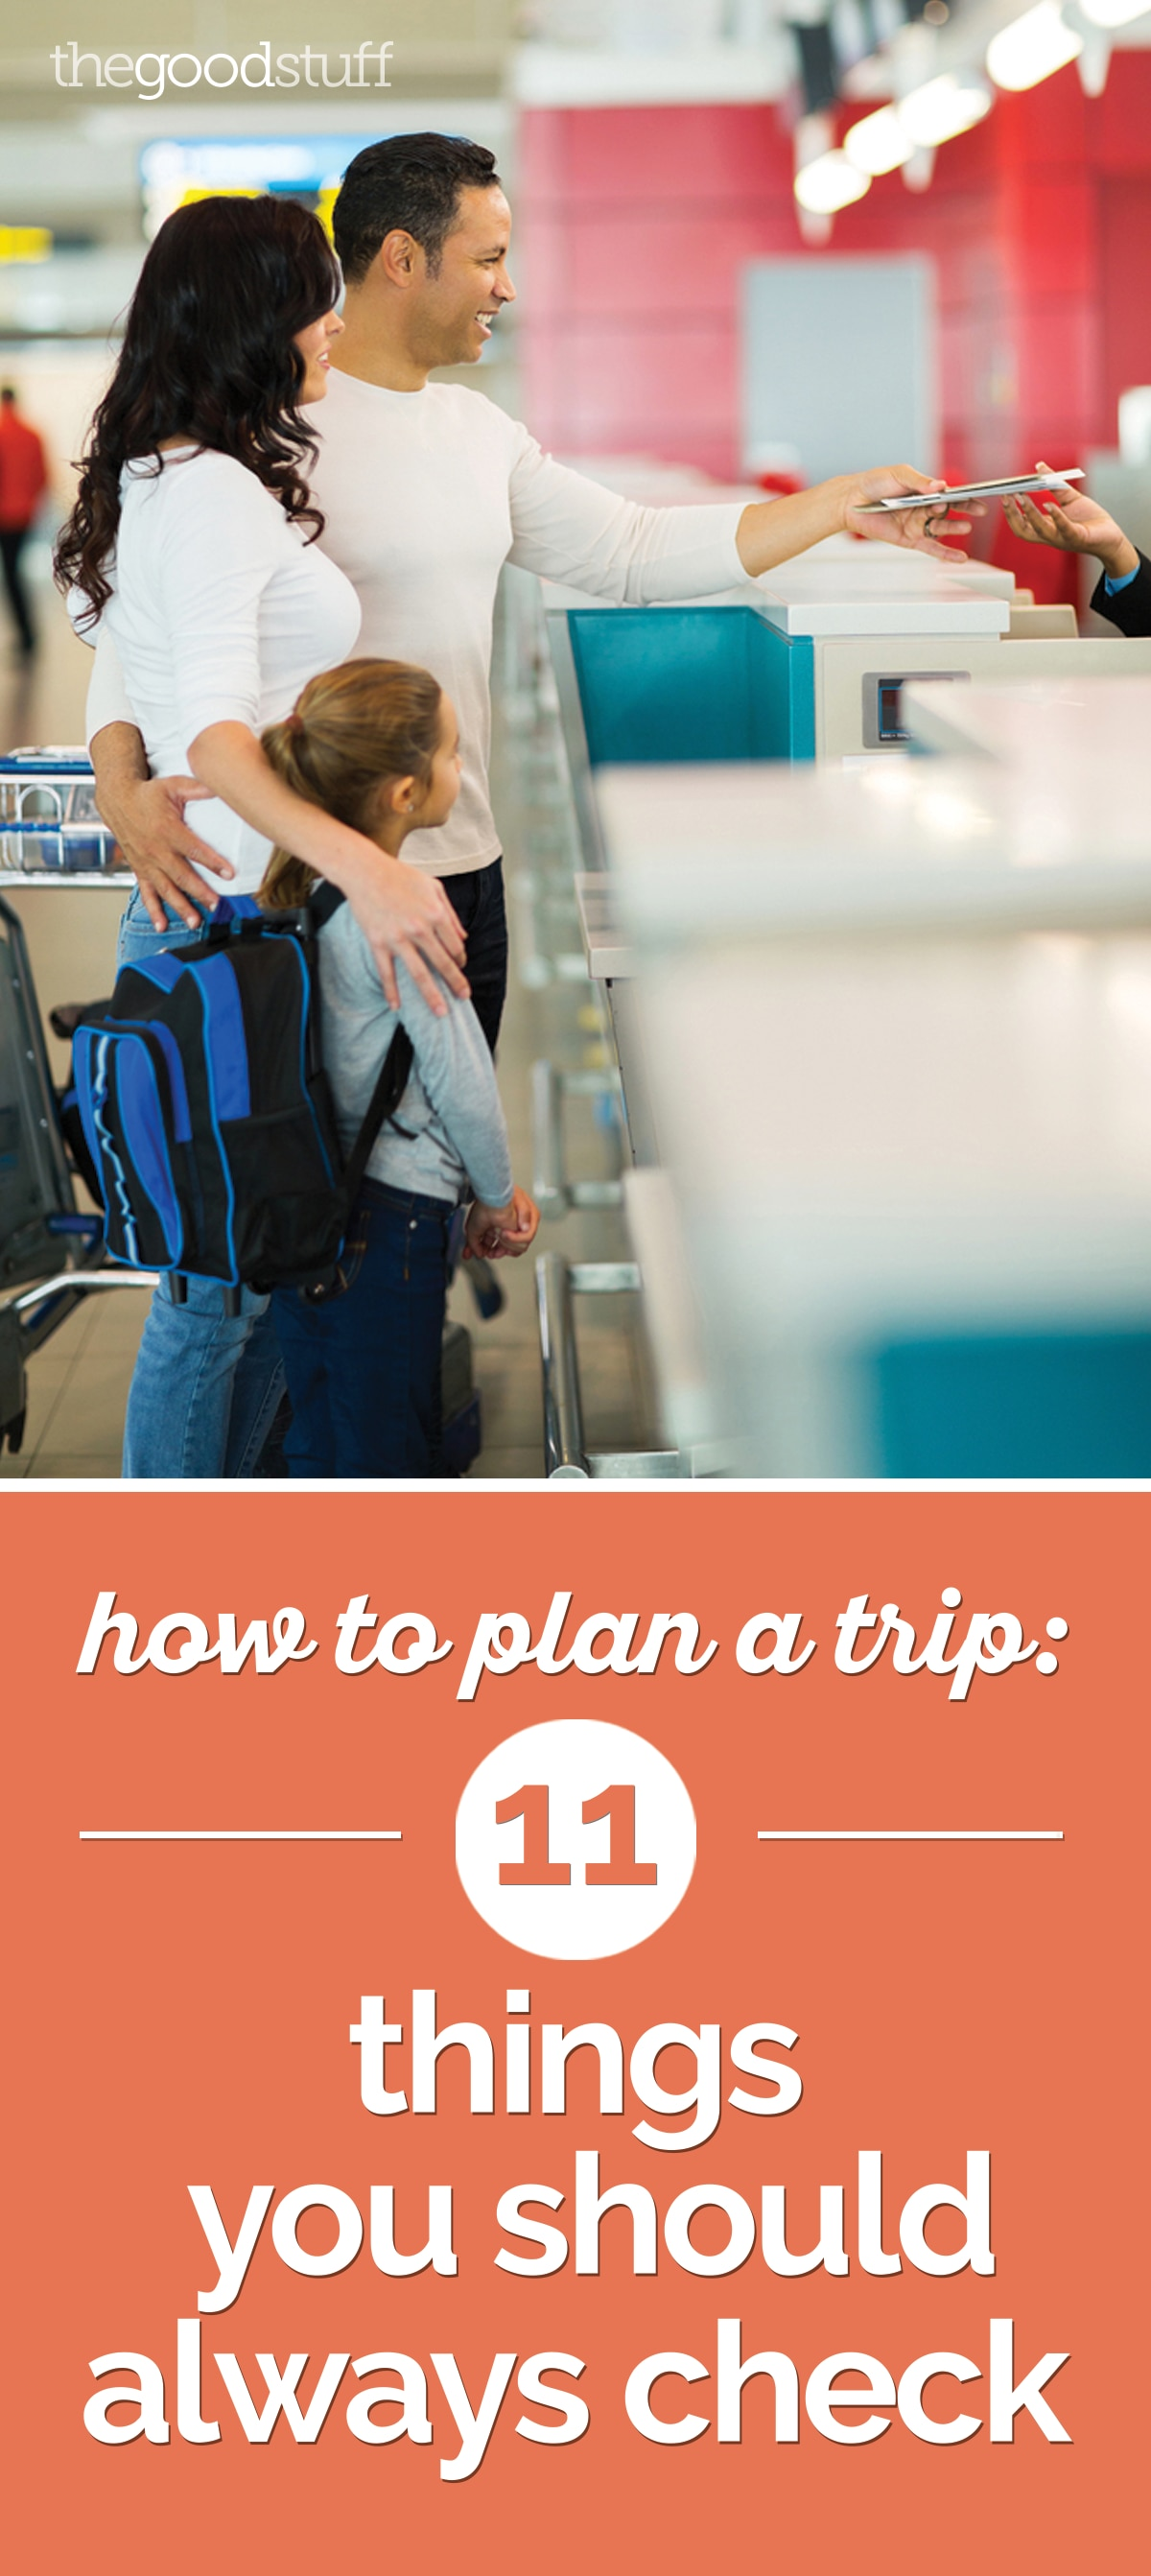 How to Plan a Trip: 11 Things You Should Always Check | thegoodstuff